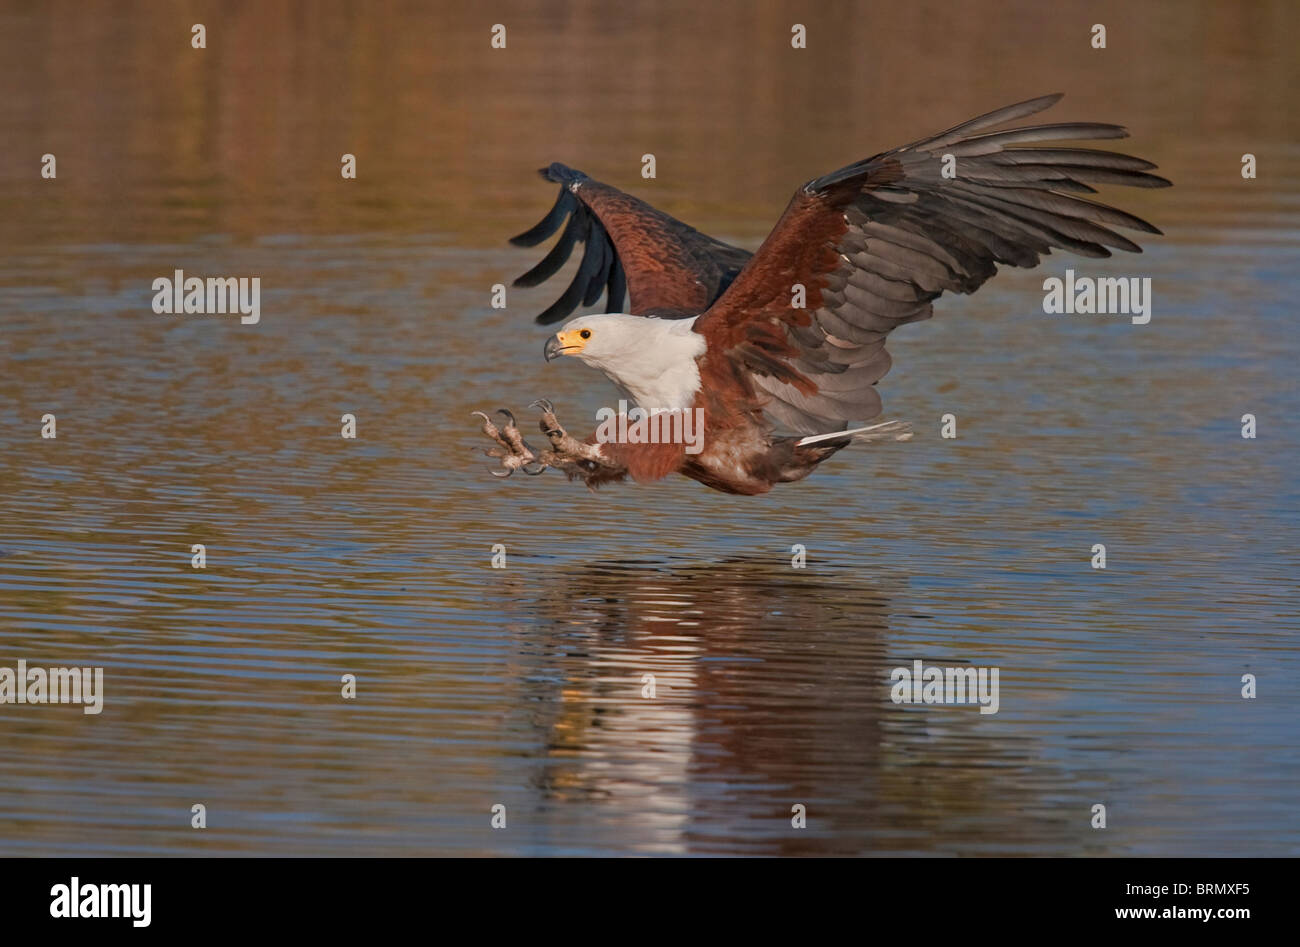 African fish eagle swooping with its talons extended - Stock Image